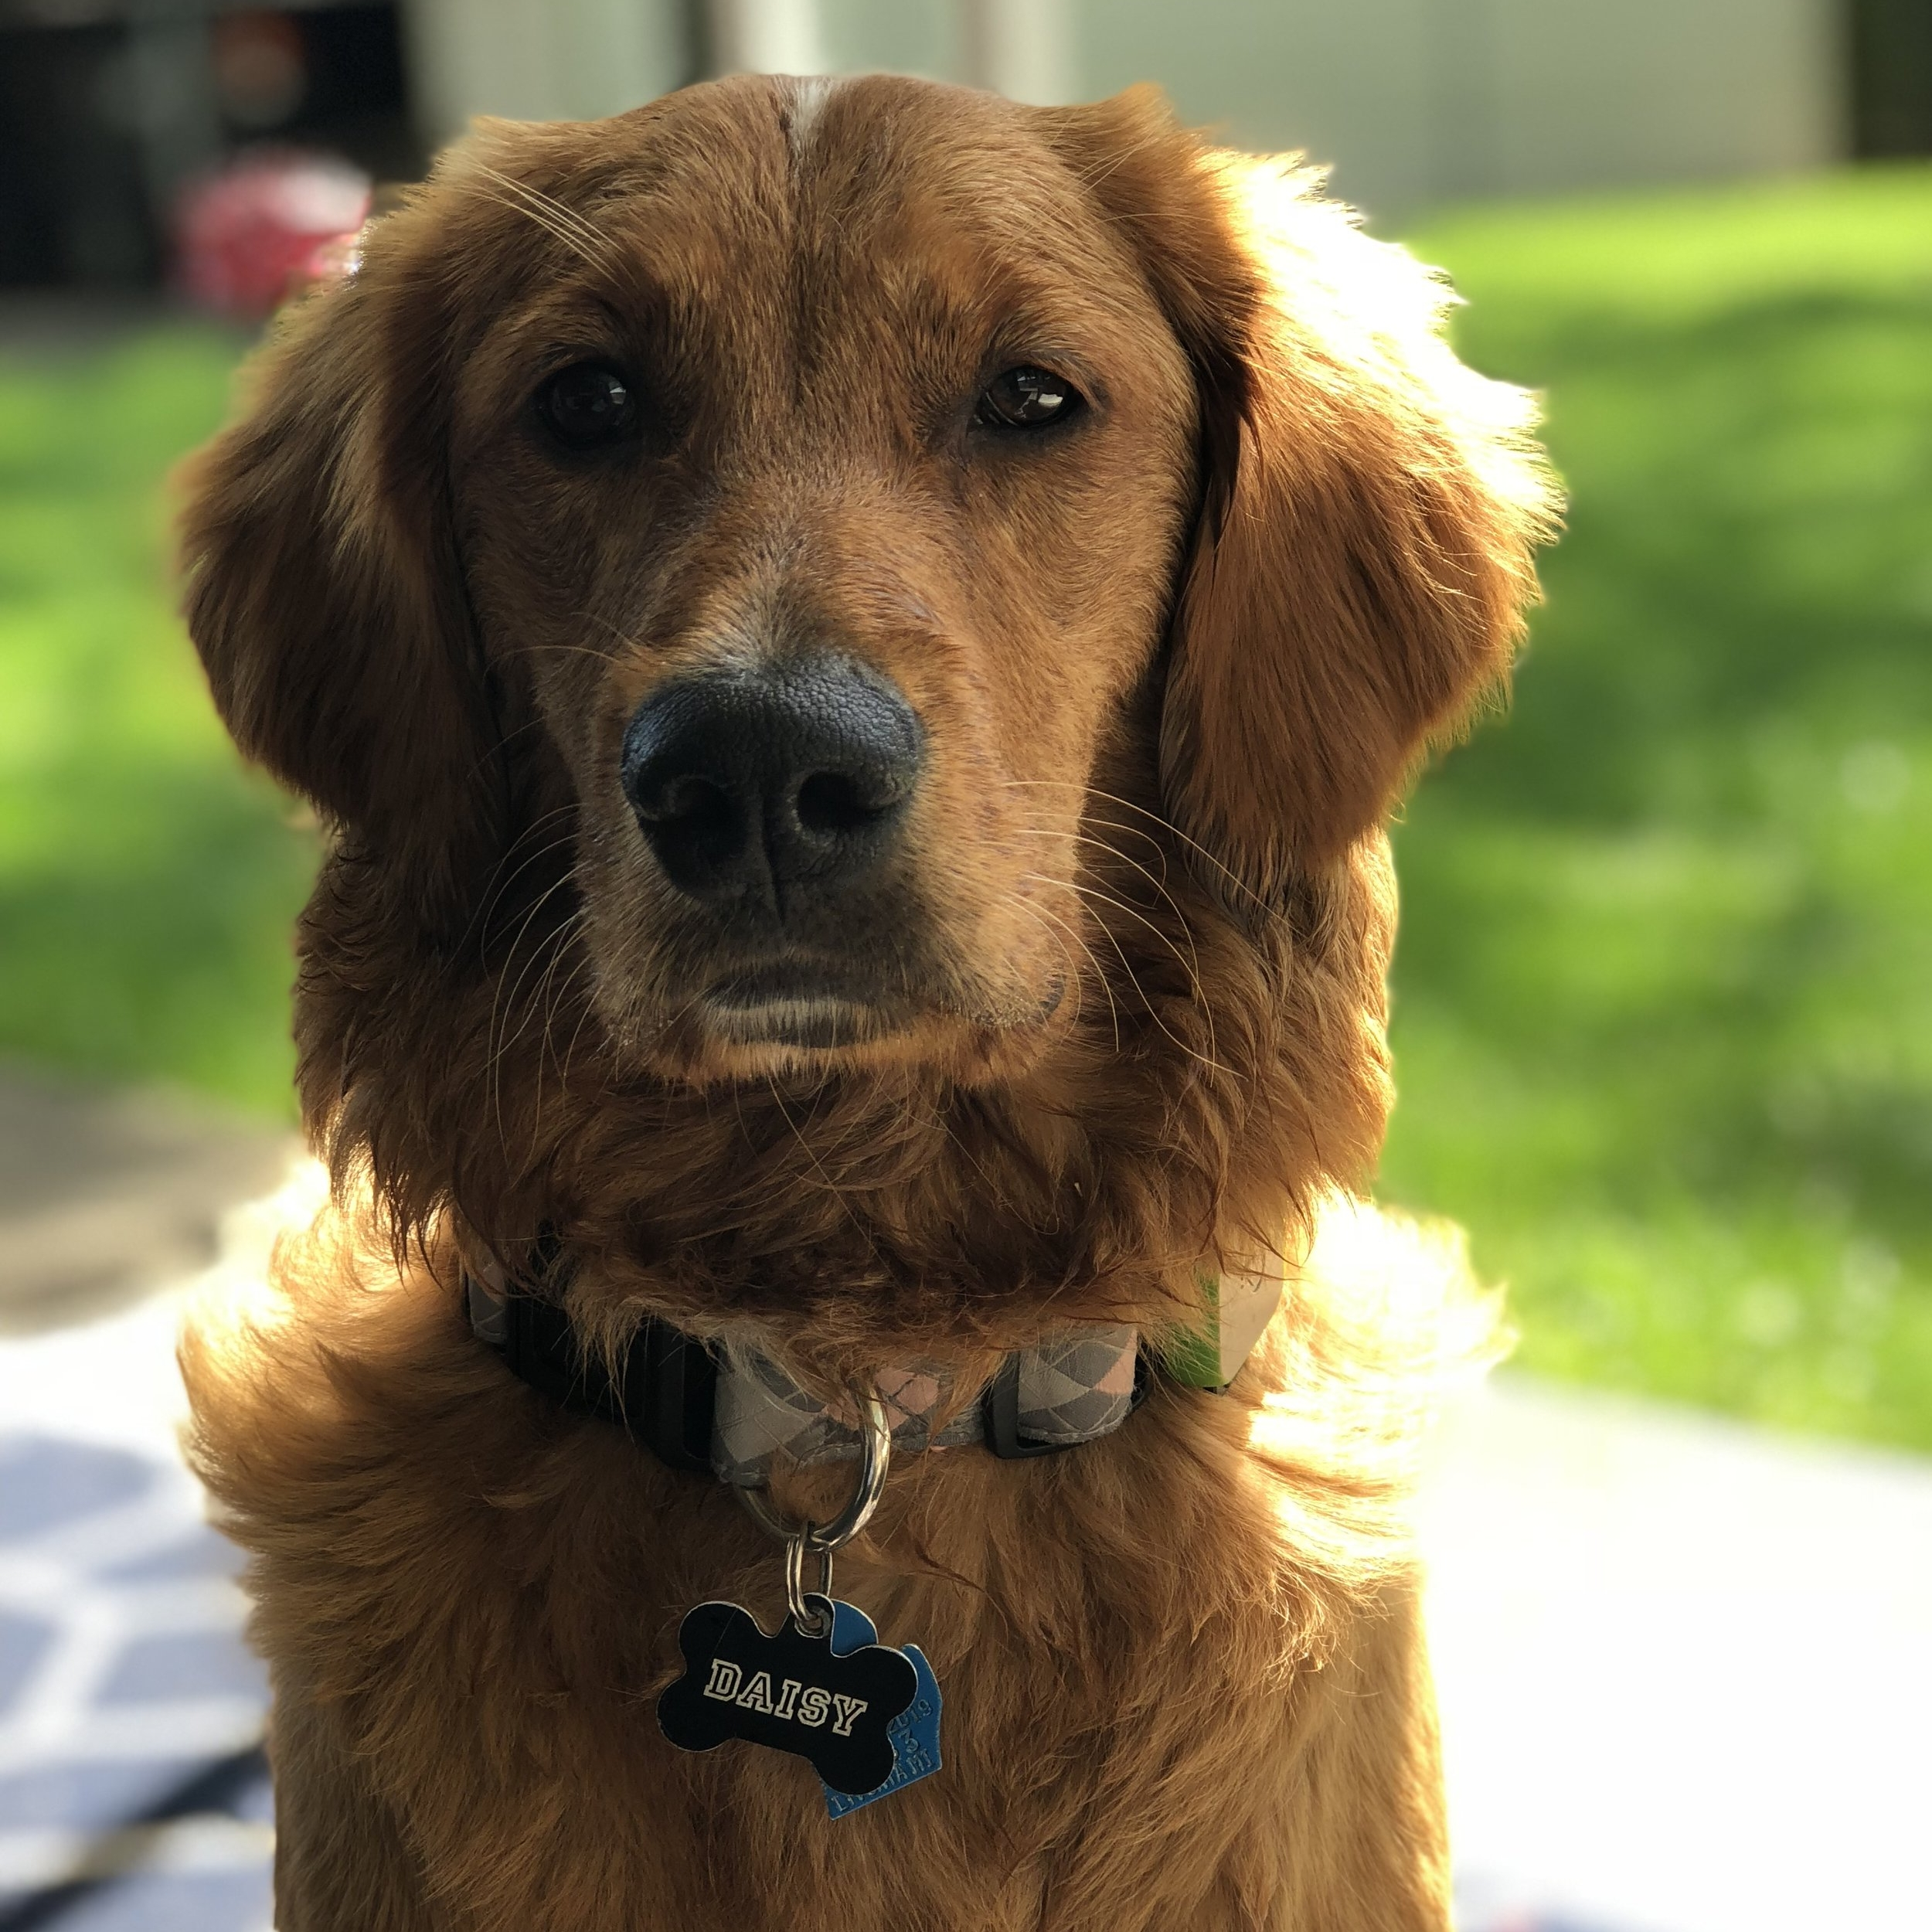 Daisy,our top dog actress in April - Daisy's mom has shared 26 videos of Daisy eating, drinking, scratching, walking, and living a good dog life.